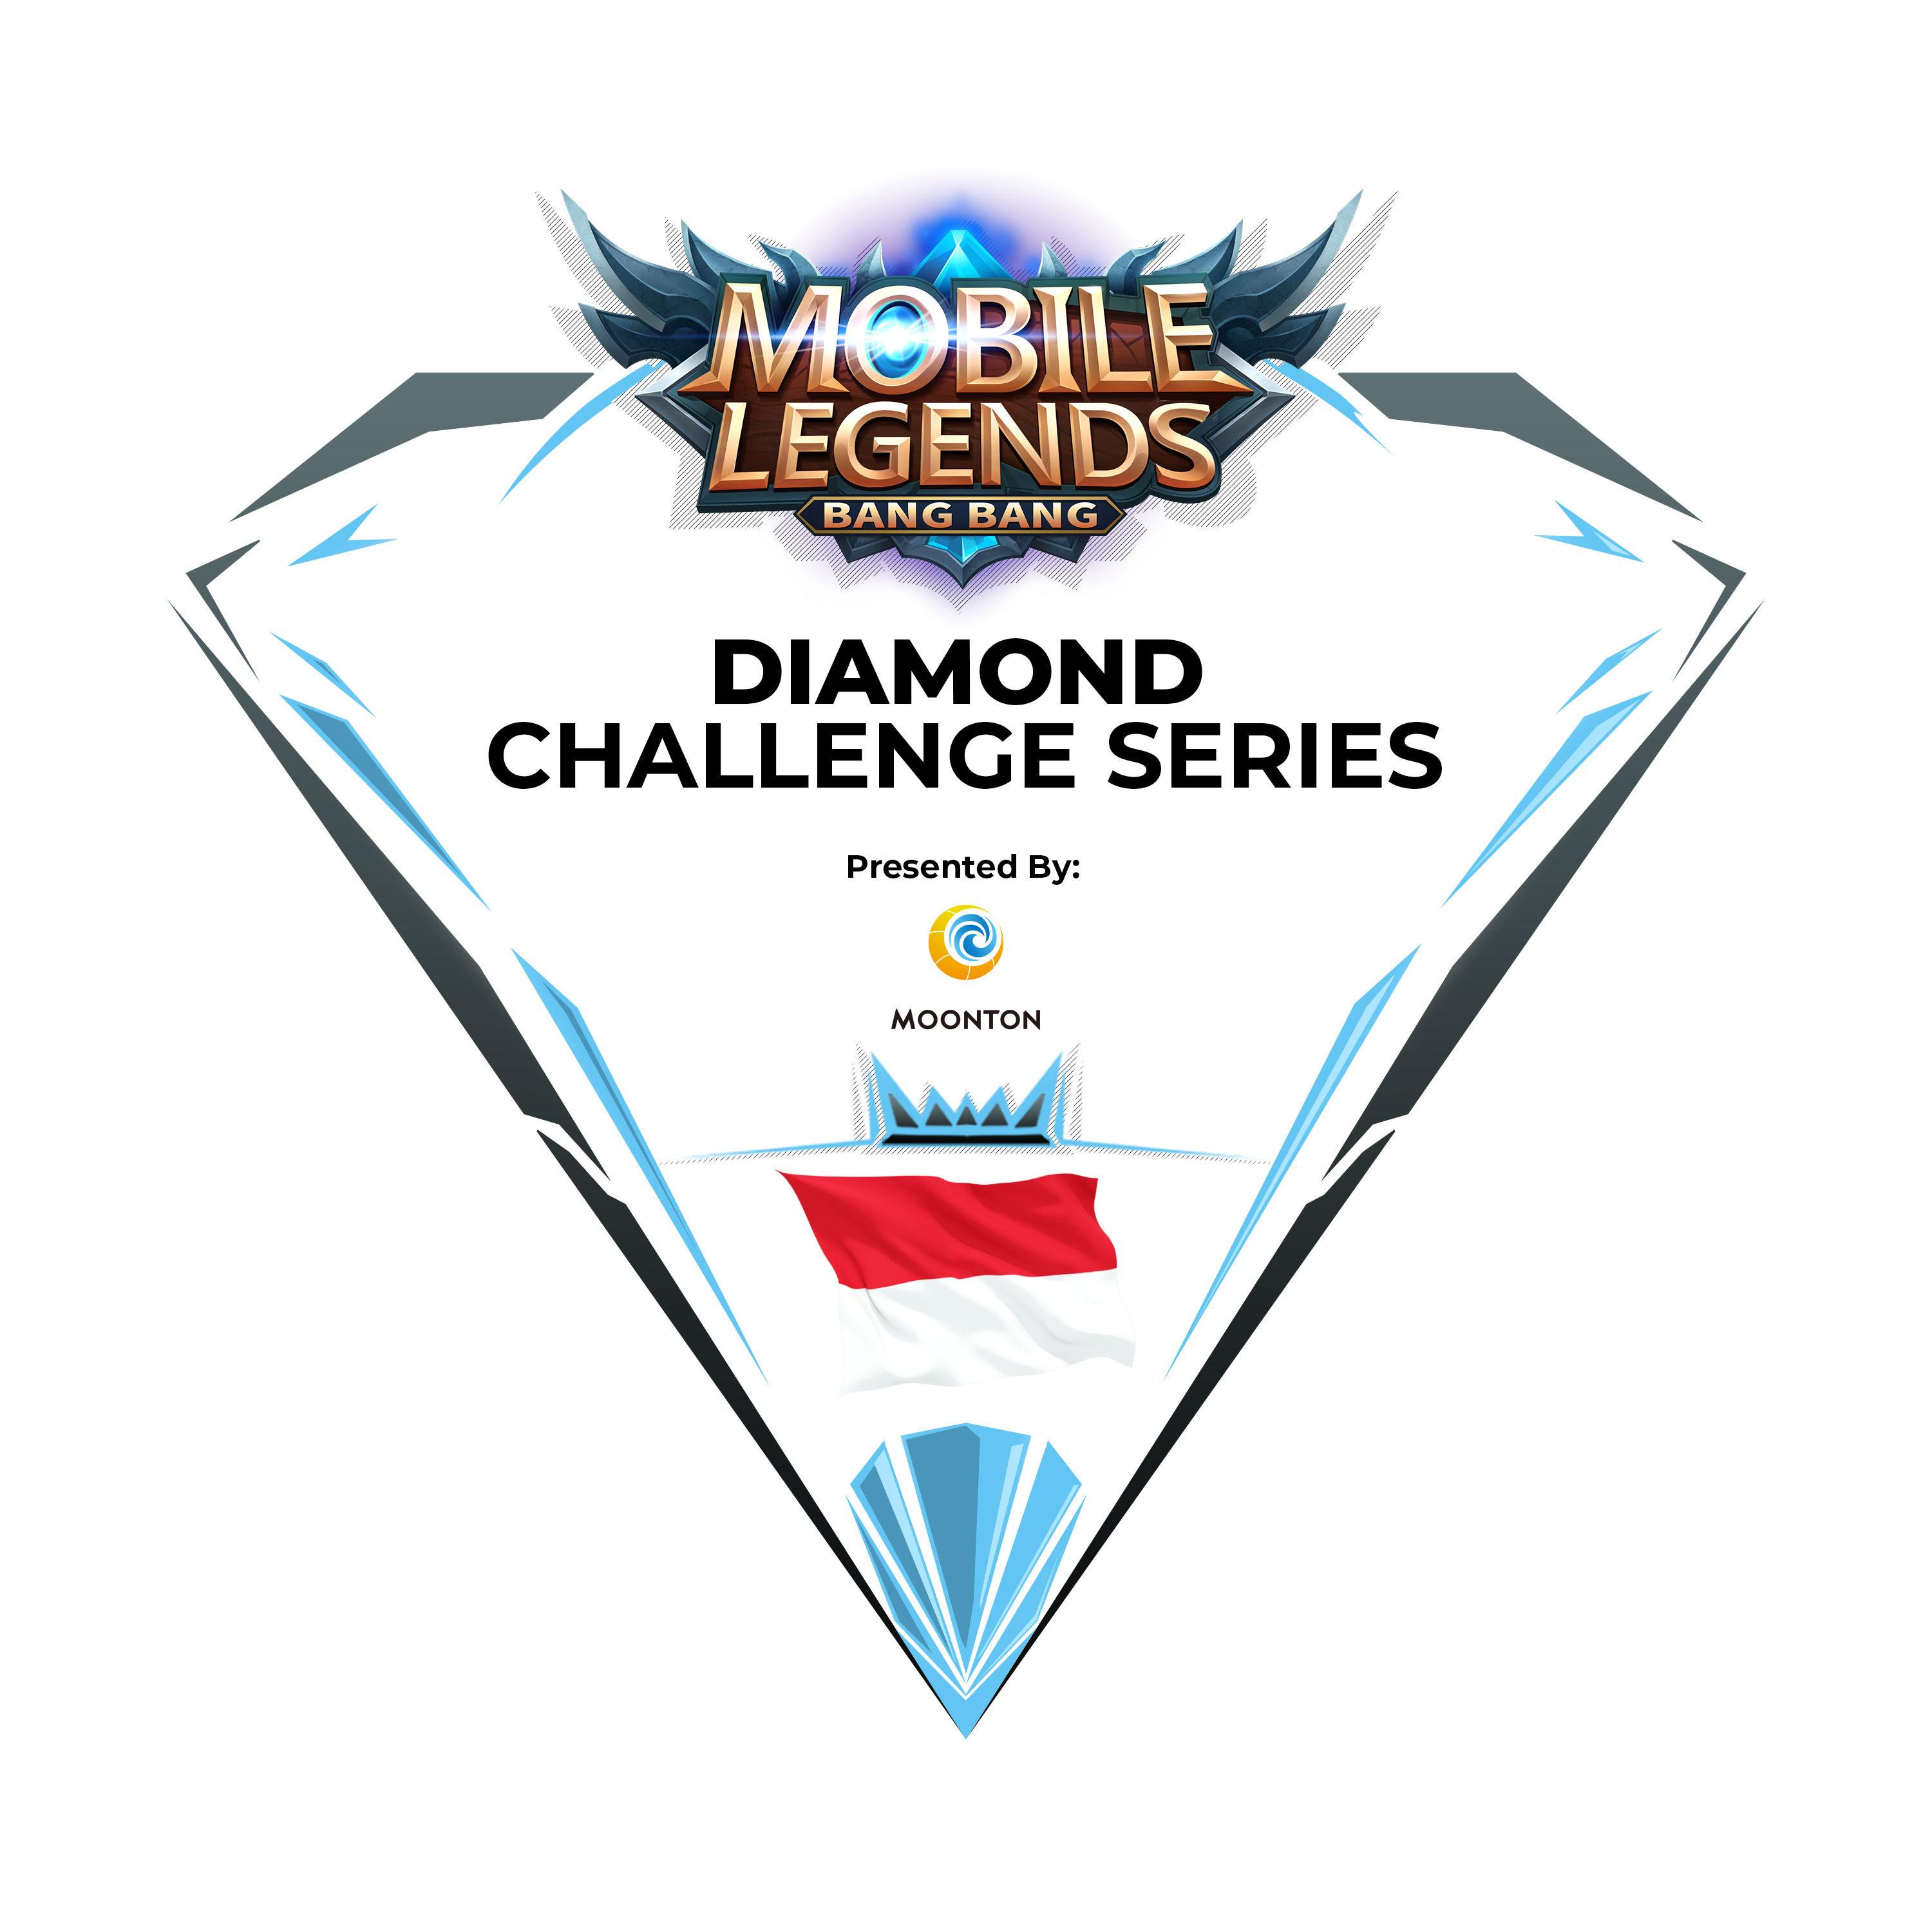 Mobile Legends Diamond Challenge